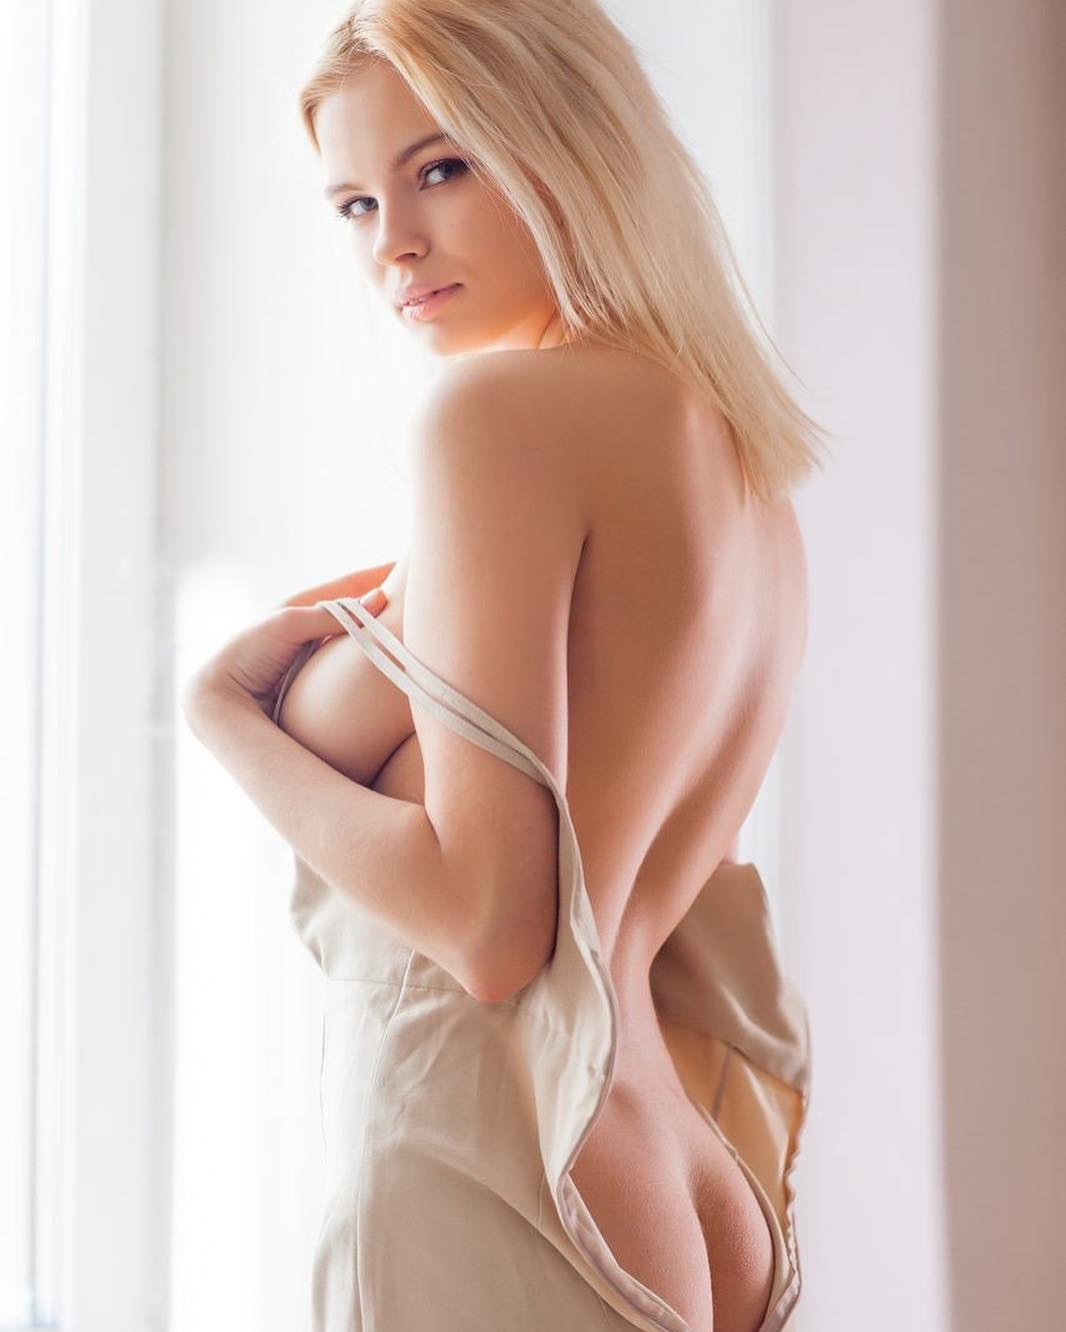 blonde babe temtation pose